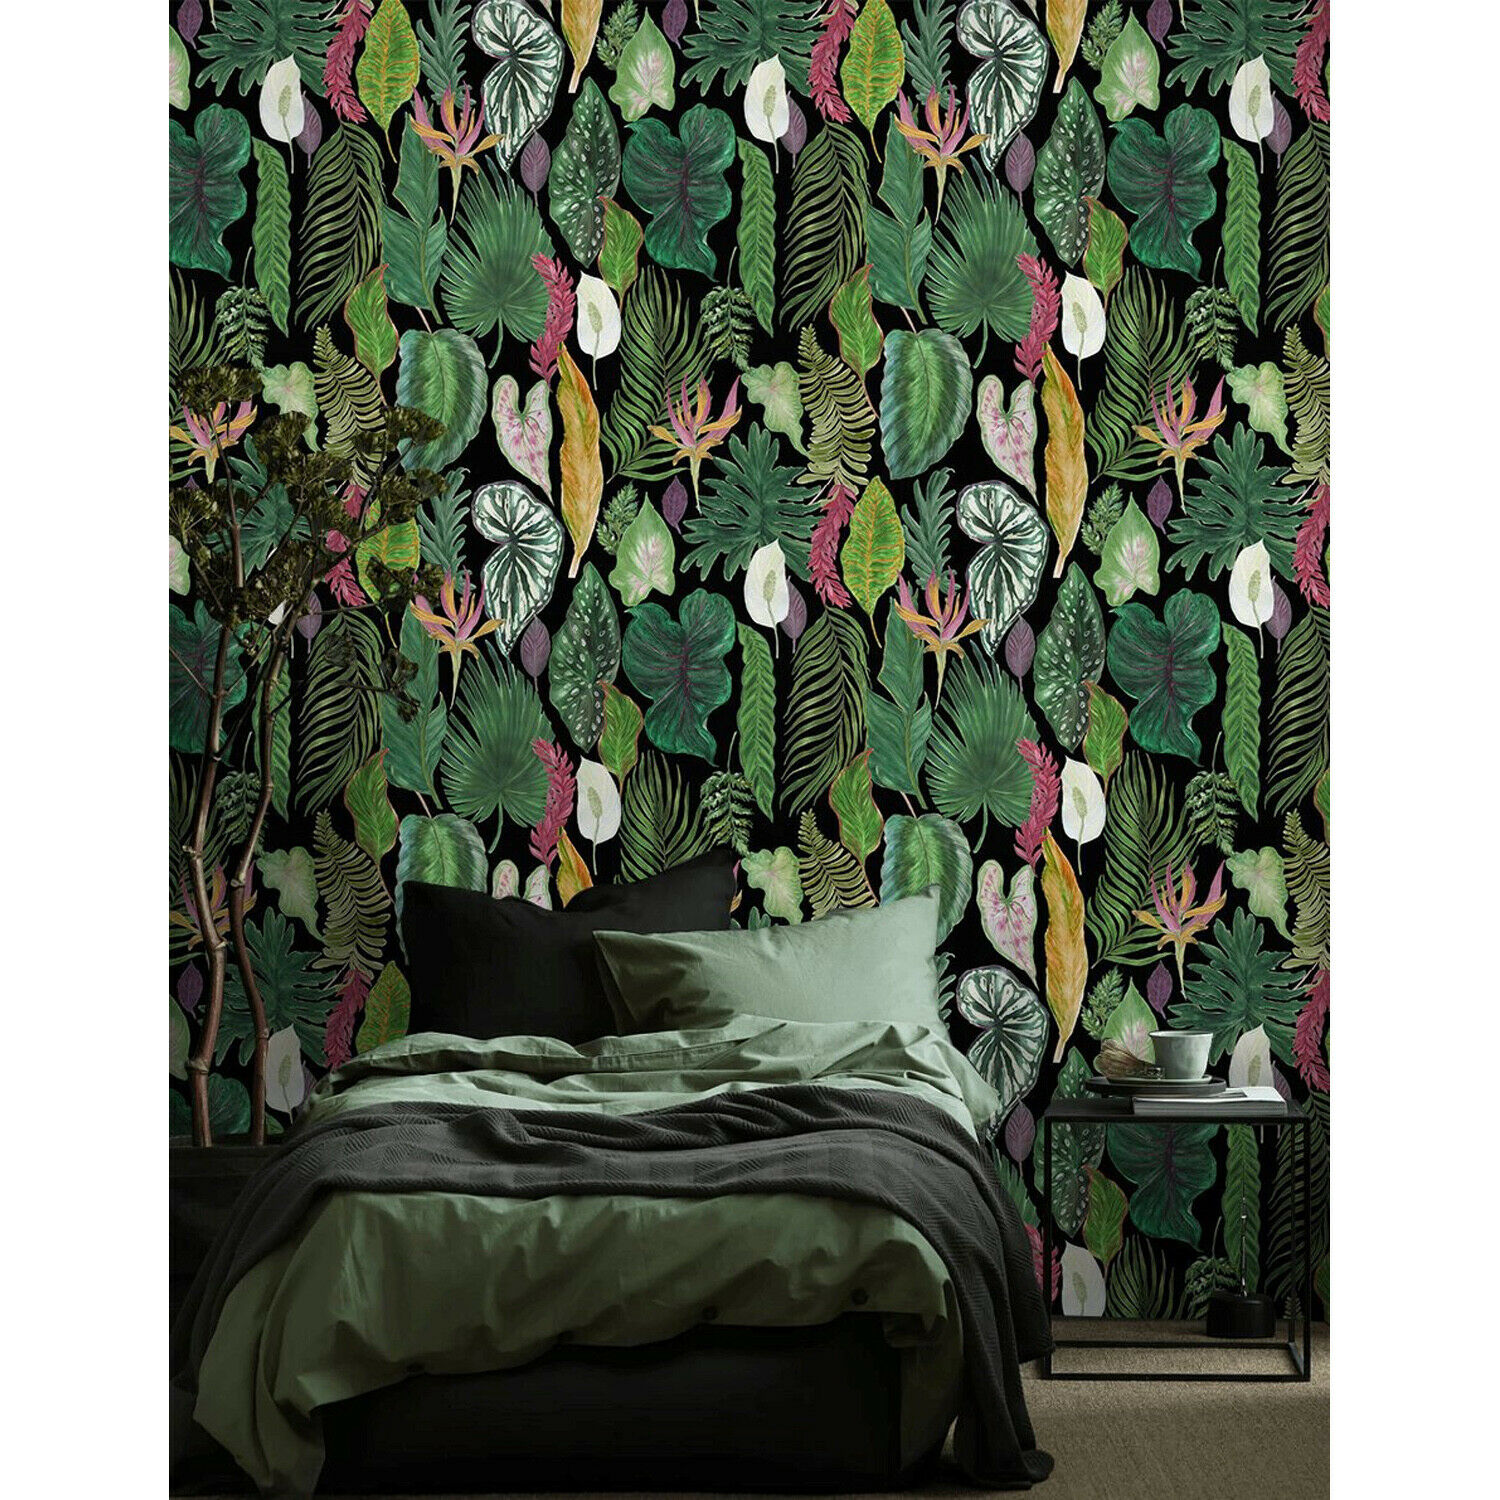 Tropical leaves Removable wallpaper Grün and Gelb Home Decor